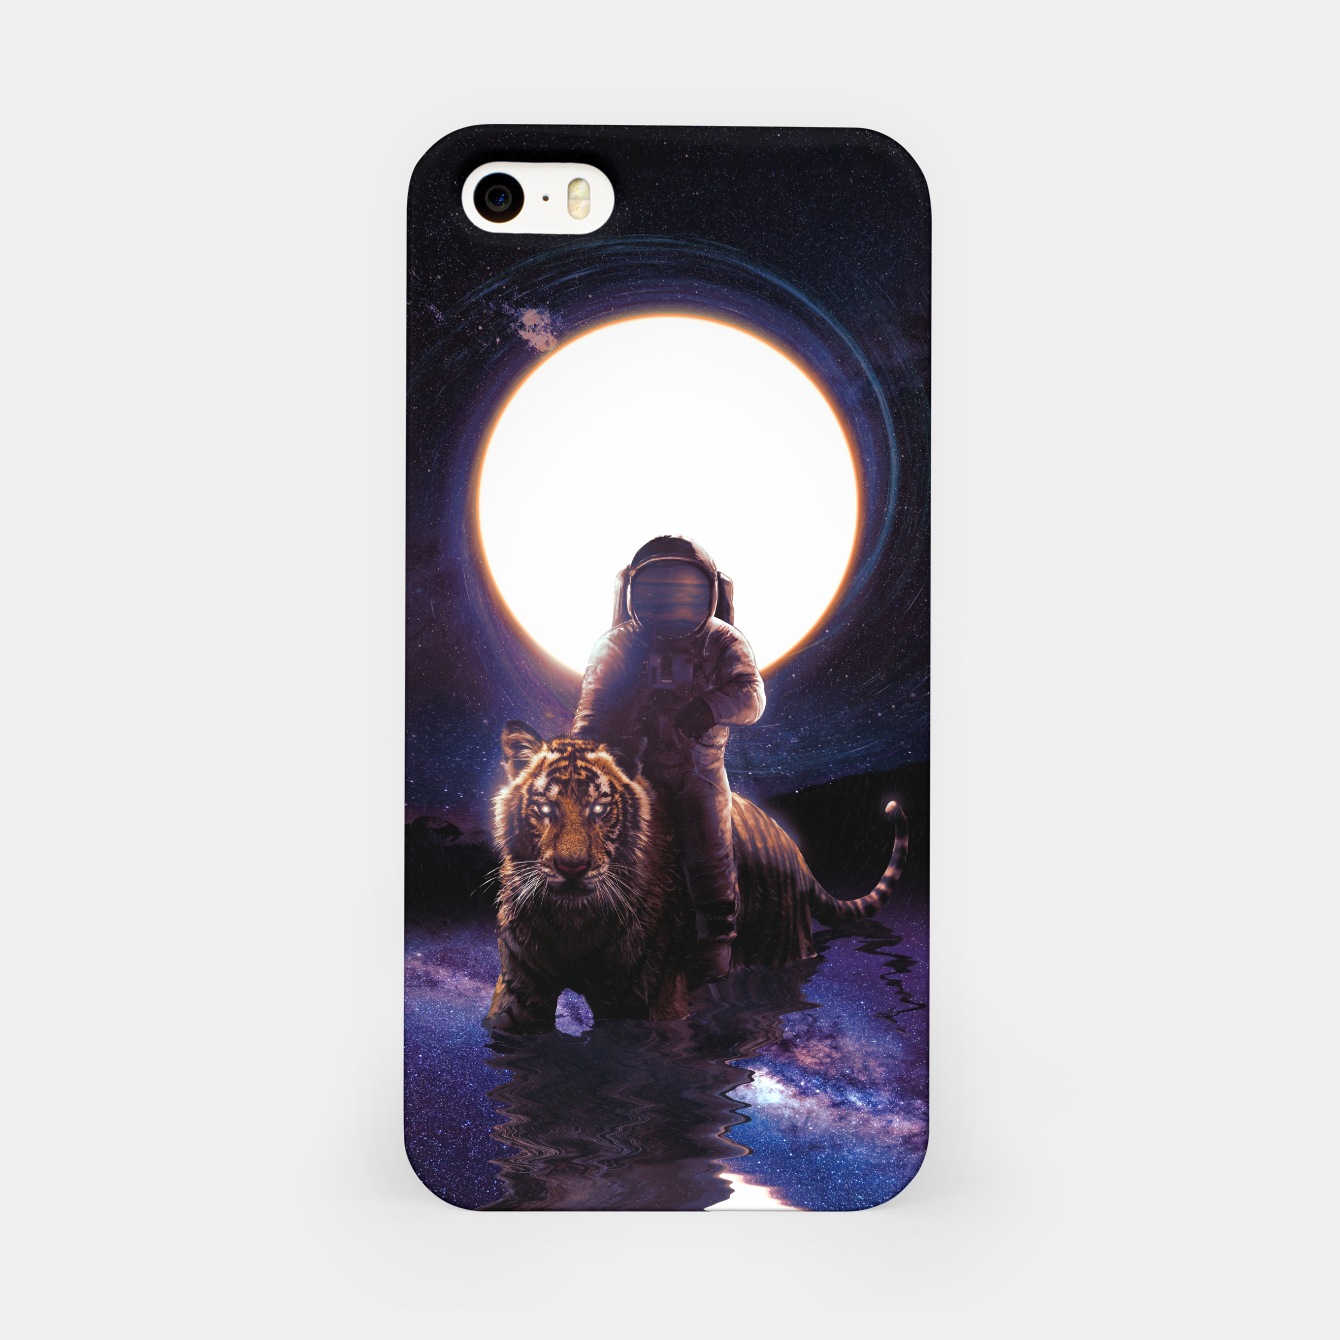 Image of Hunter iPhone Case - Live Heroes